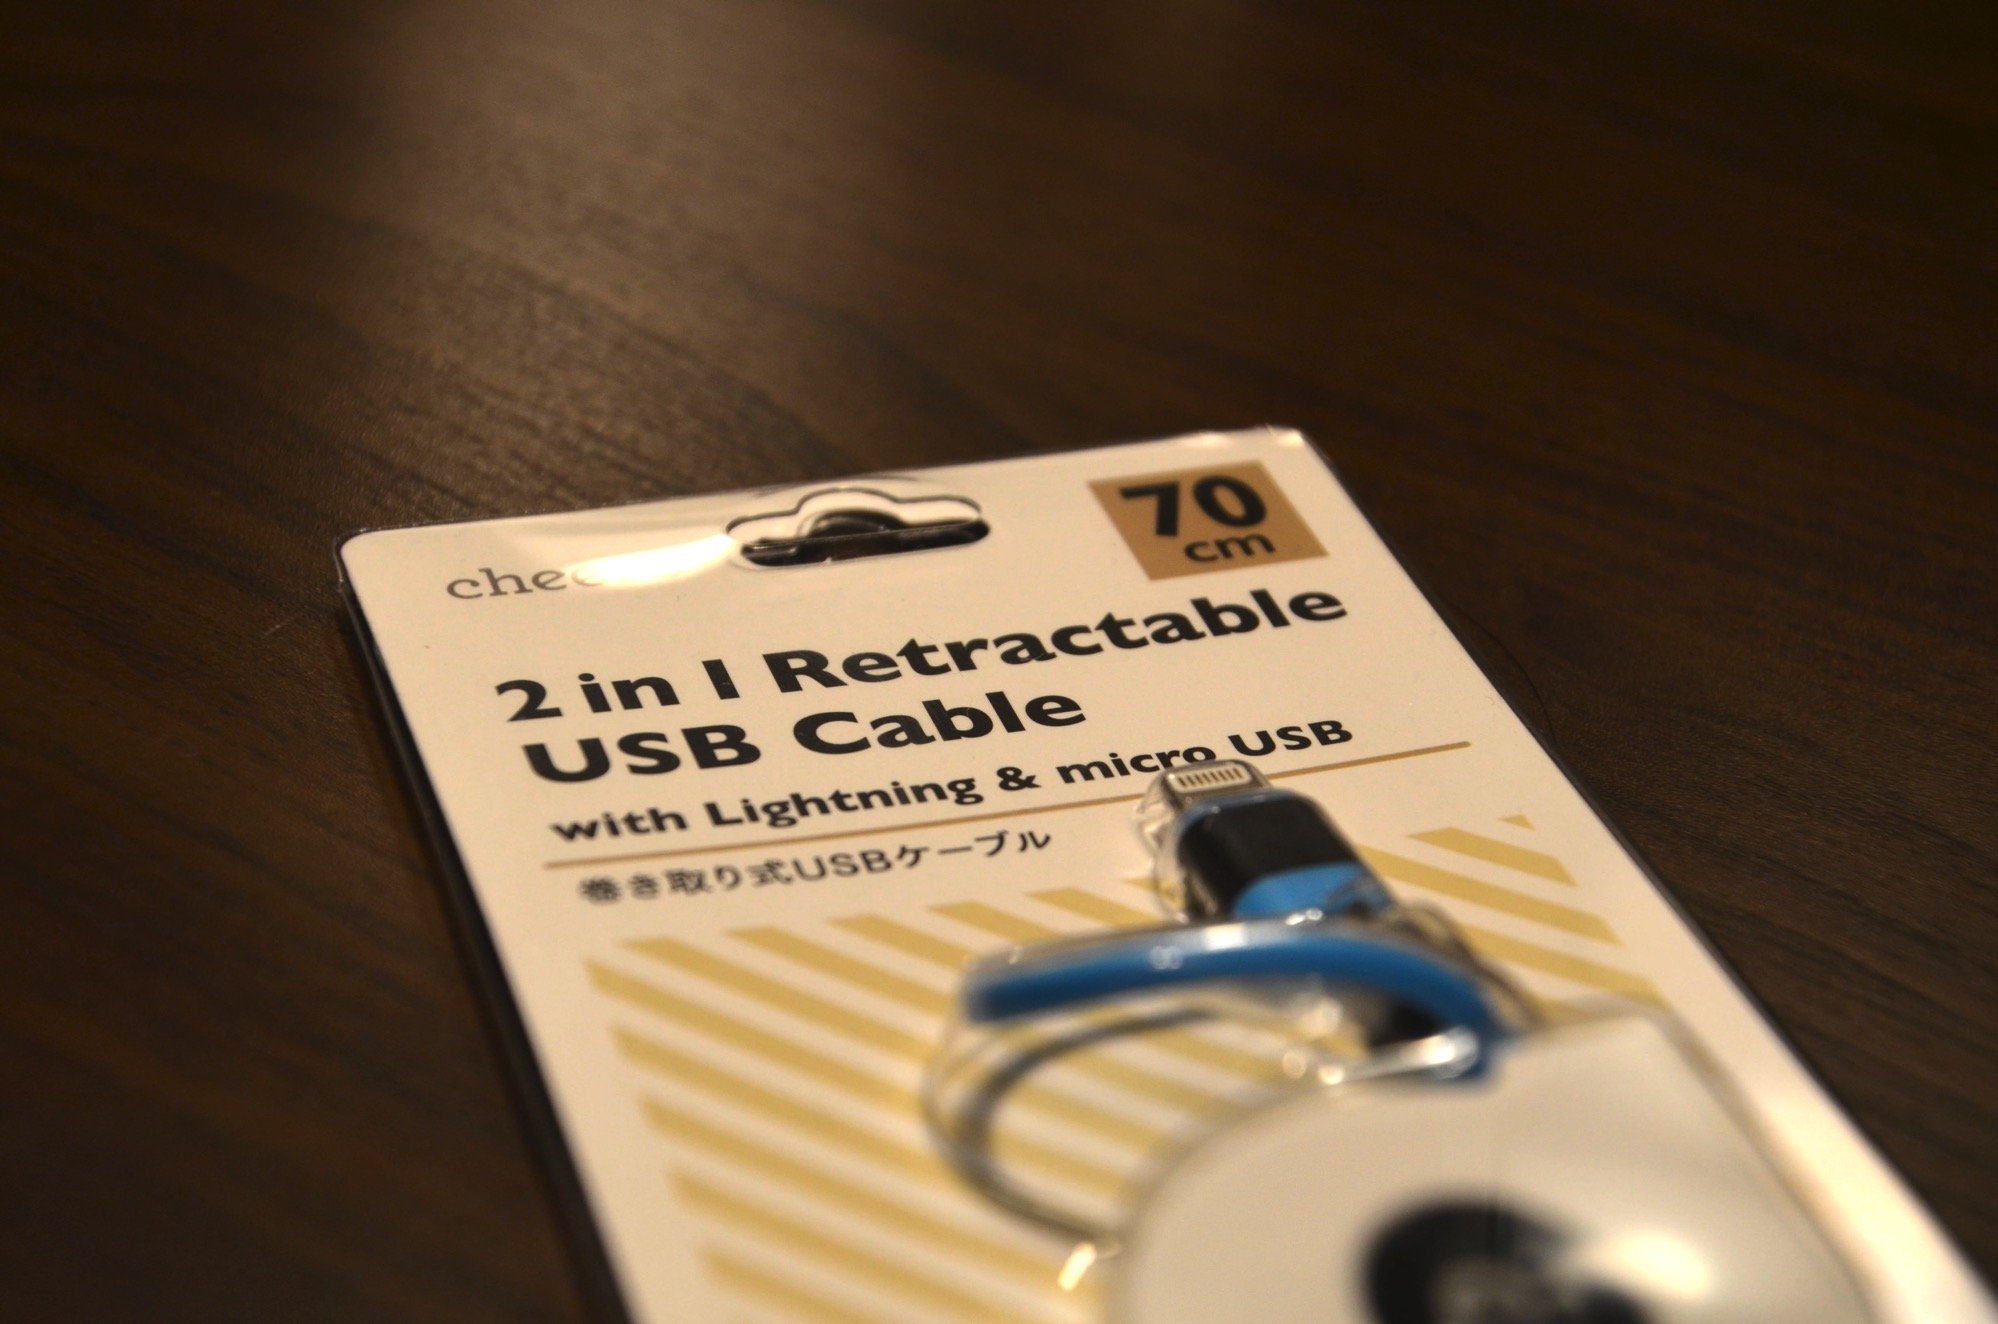 Cheero retractable cable 2